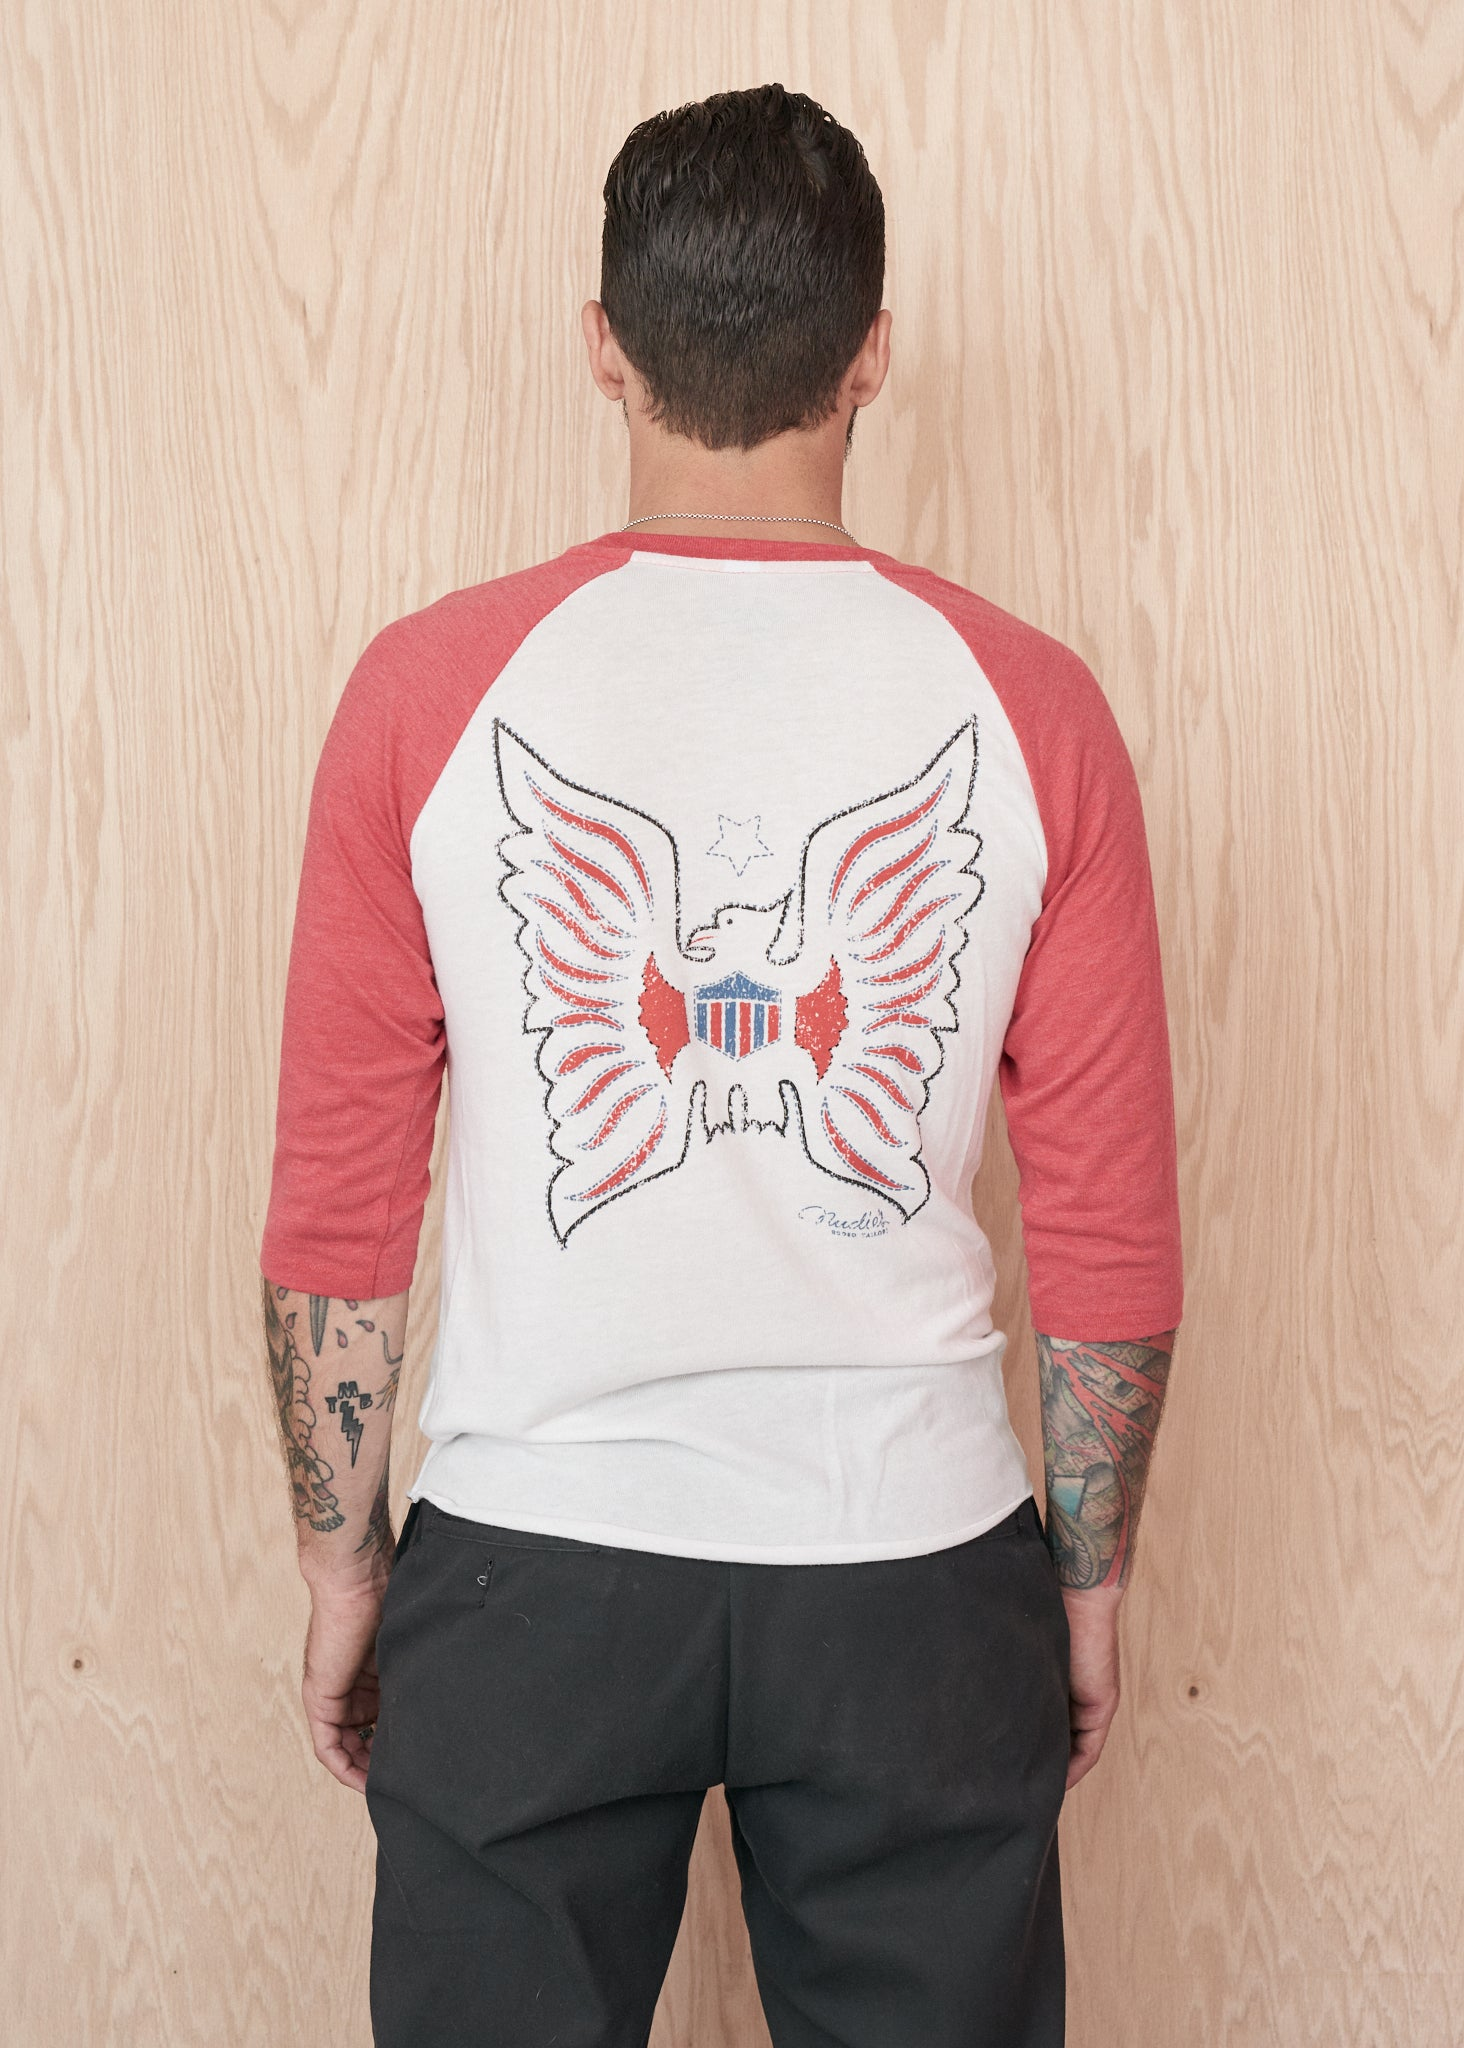 Nudie Firebird Baseball Tee - Baseball Tee - Midnight Rider